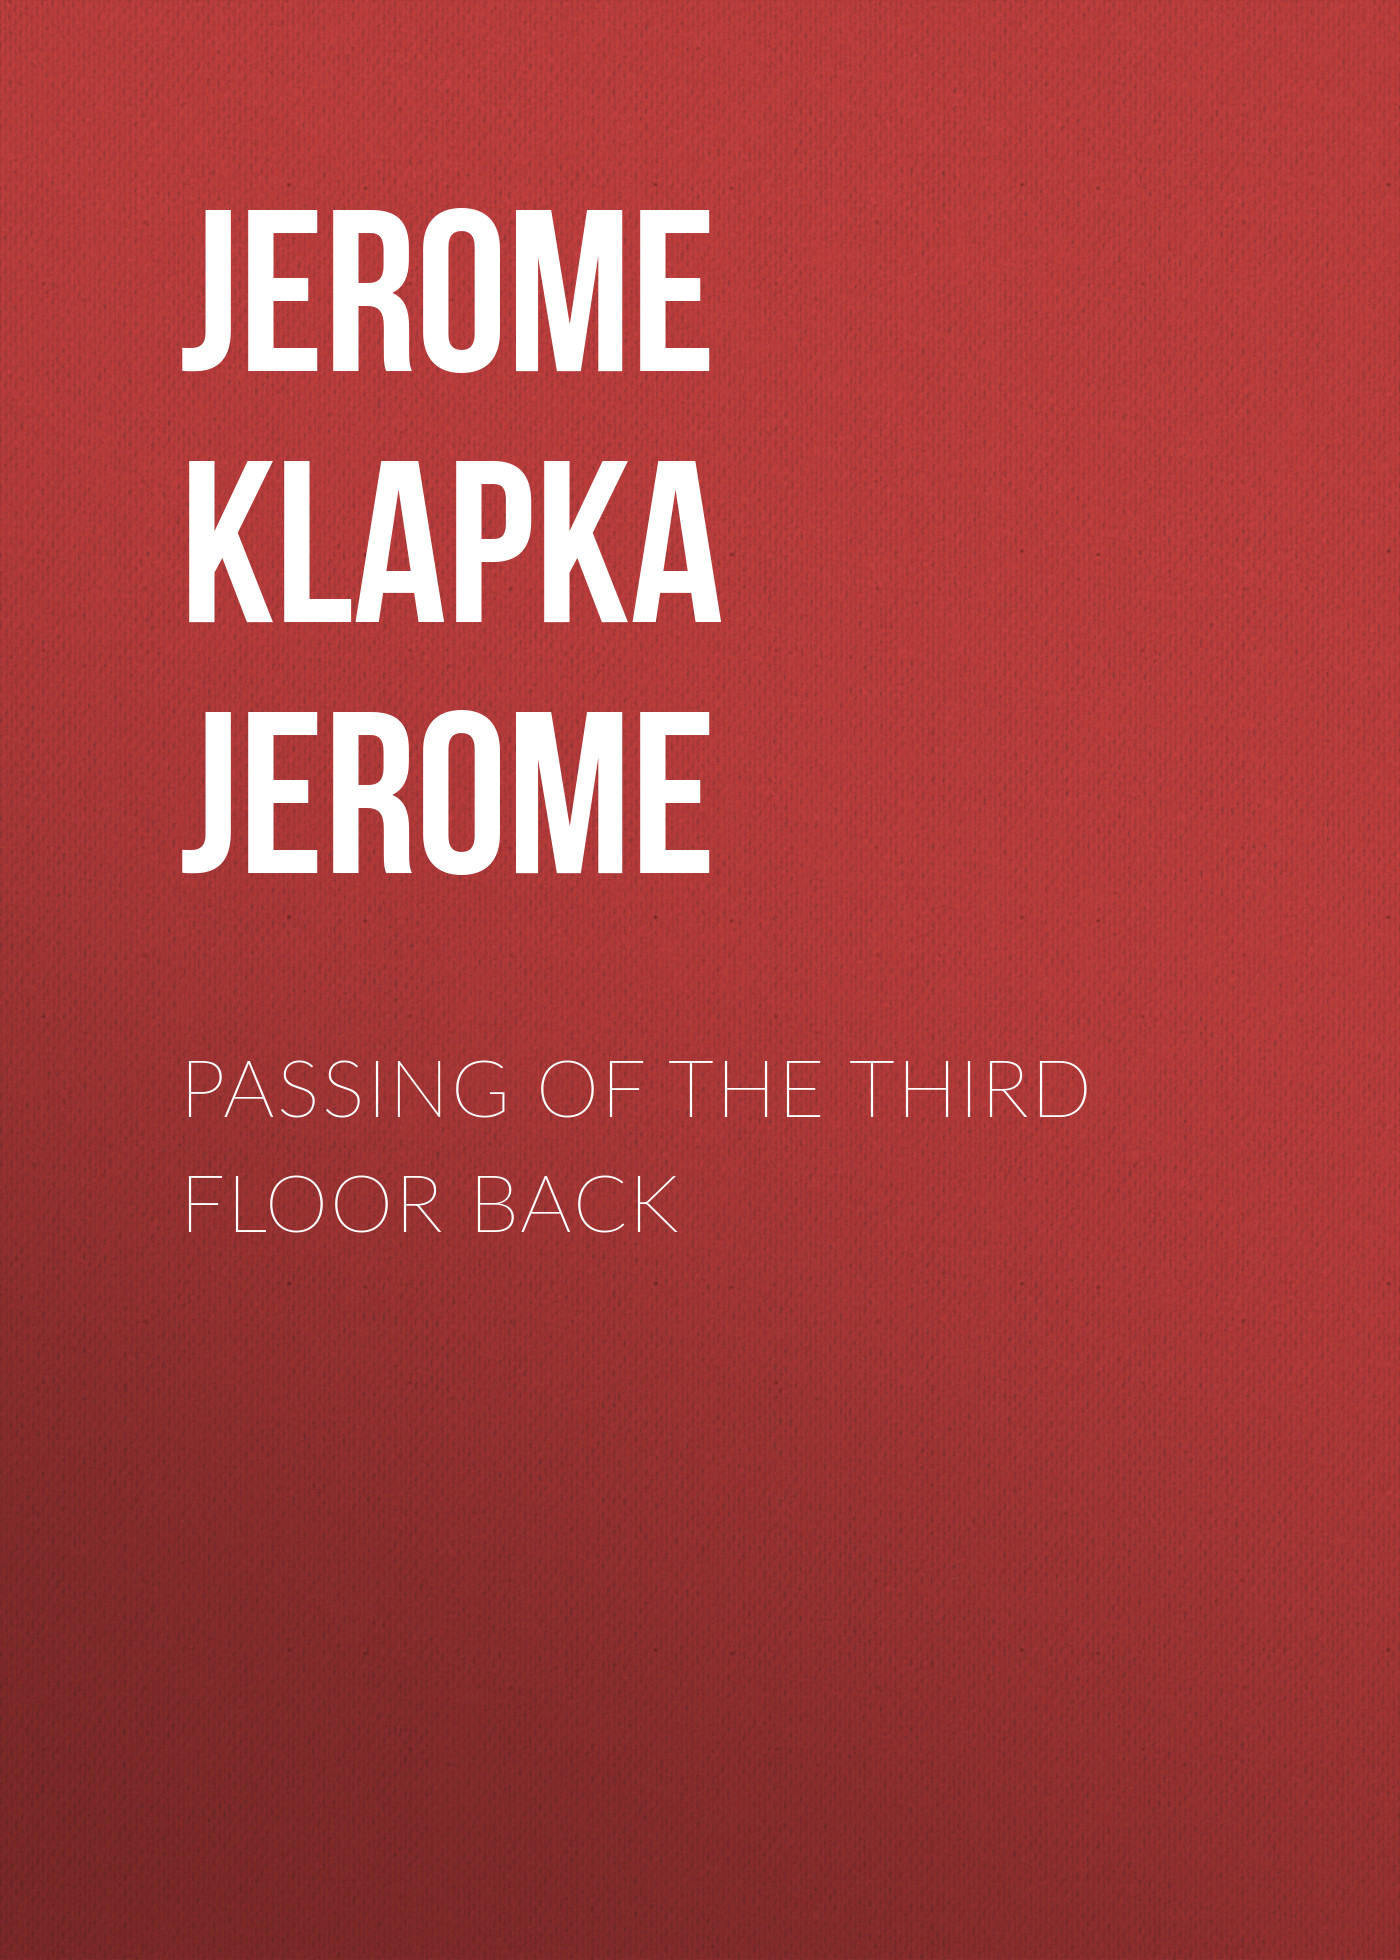 Джером Клапка Джером Passing of the Third Floor Back passing